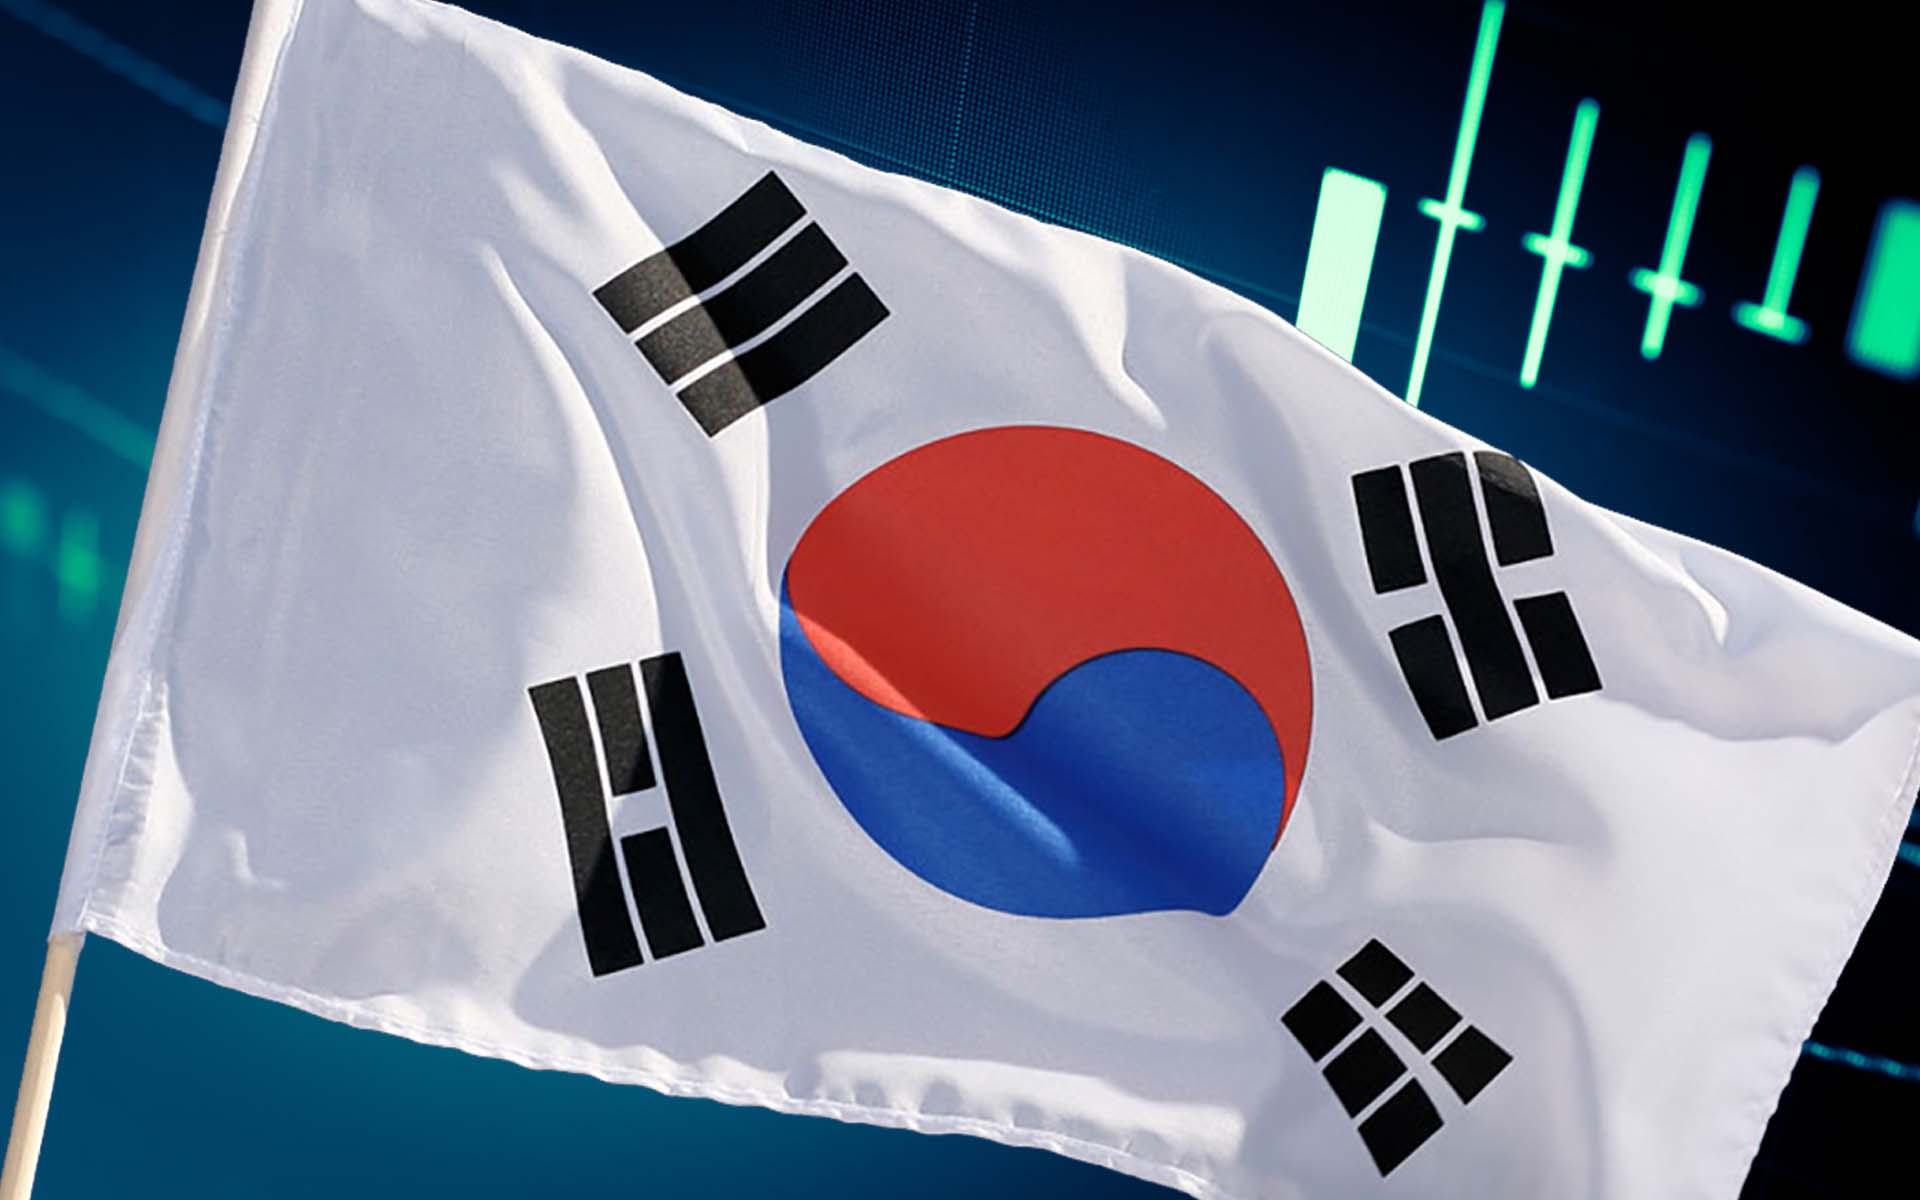 South Korea digital currency